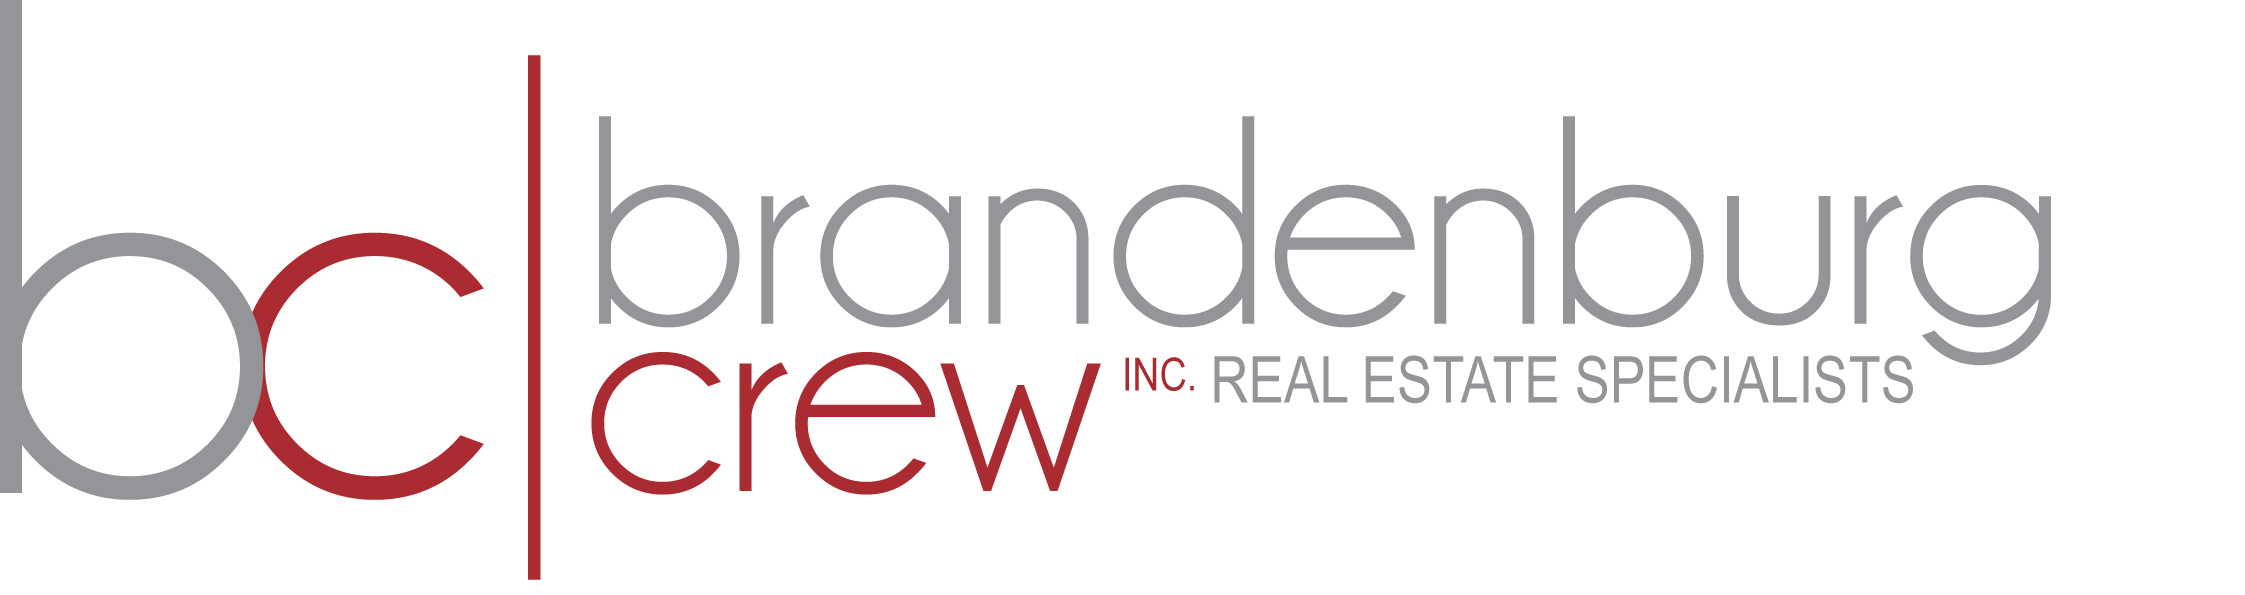 Brandenburg Crew, Inc associated with Keller Williams Inspire Realty logo